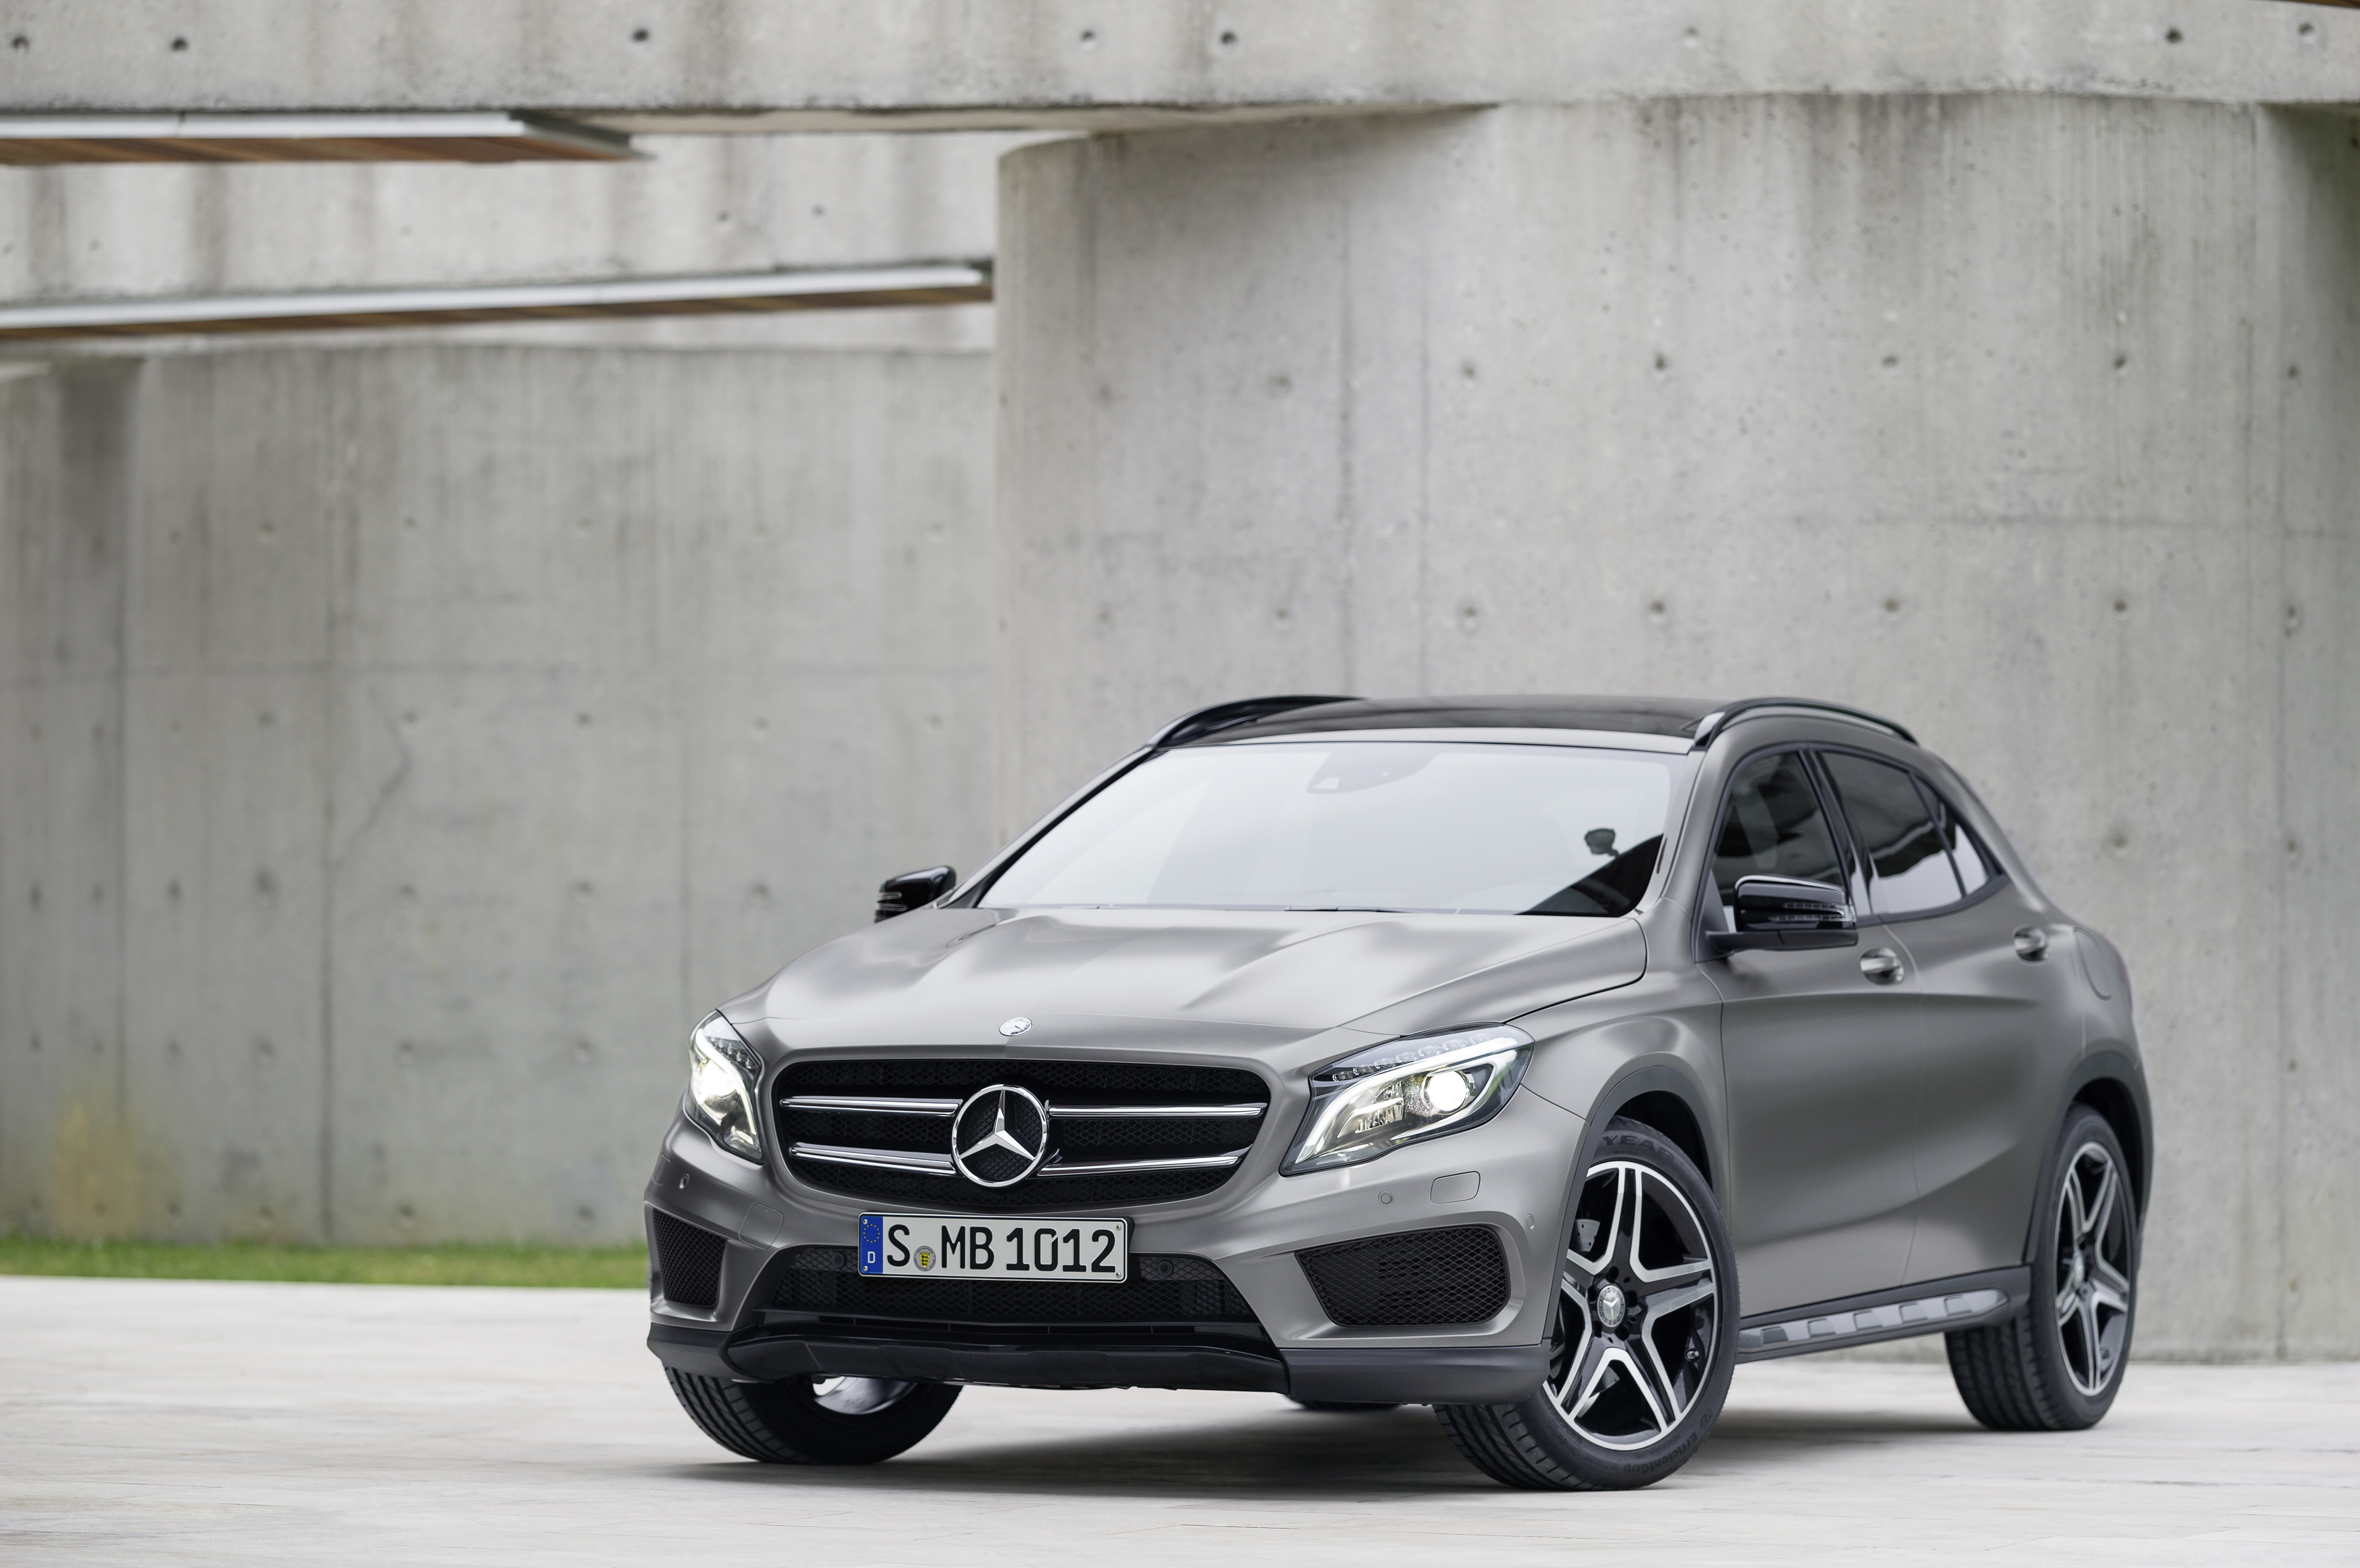 2018 mercedes-benz gla review - top speed